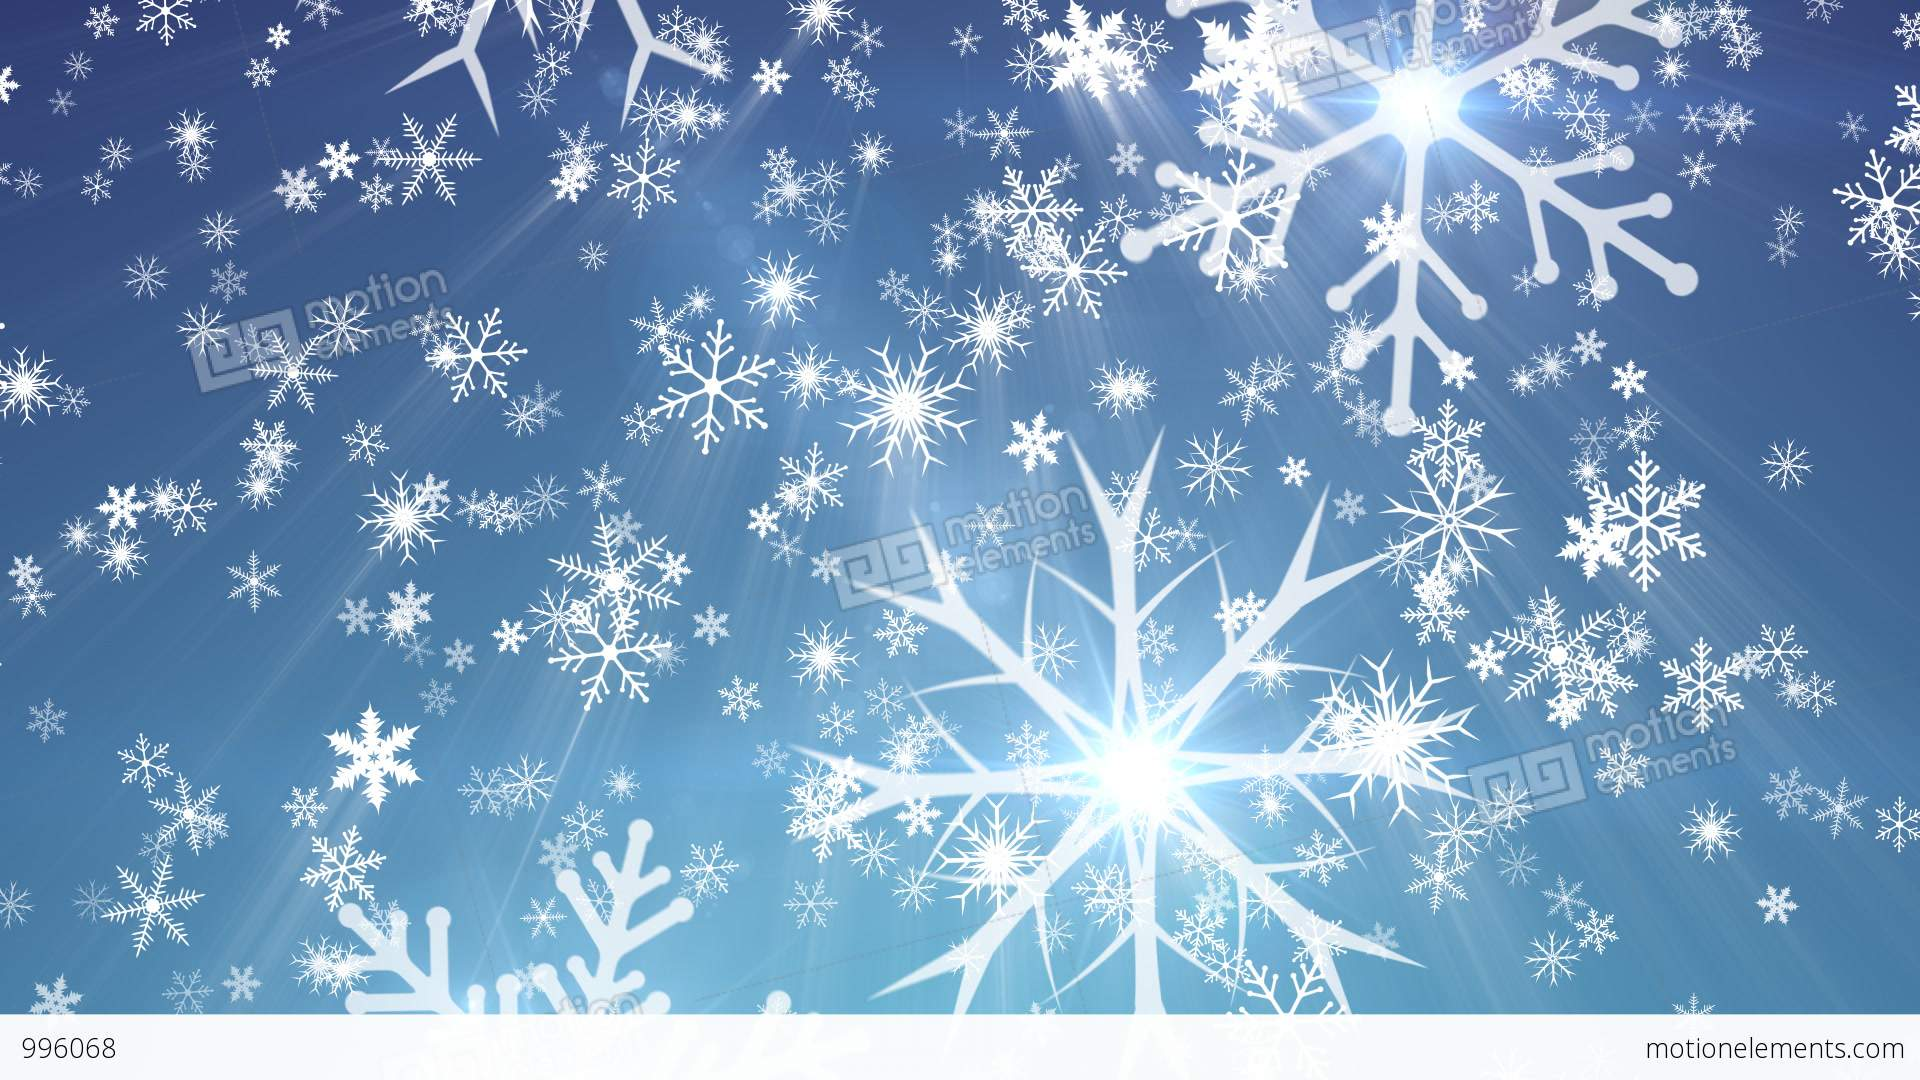 Falling Stars Grunge Wallpaper Snowy 1 Snow Christmas Video Background Loop Stock